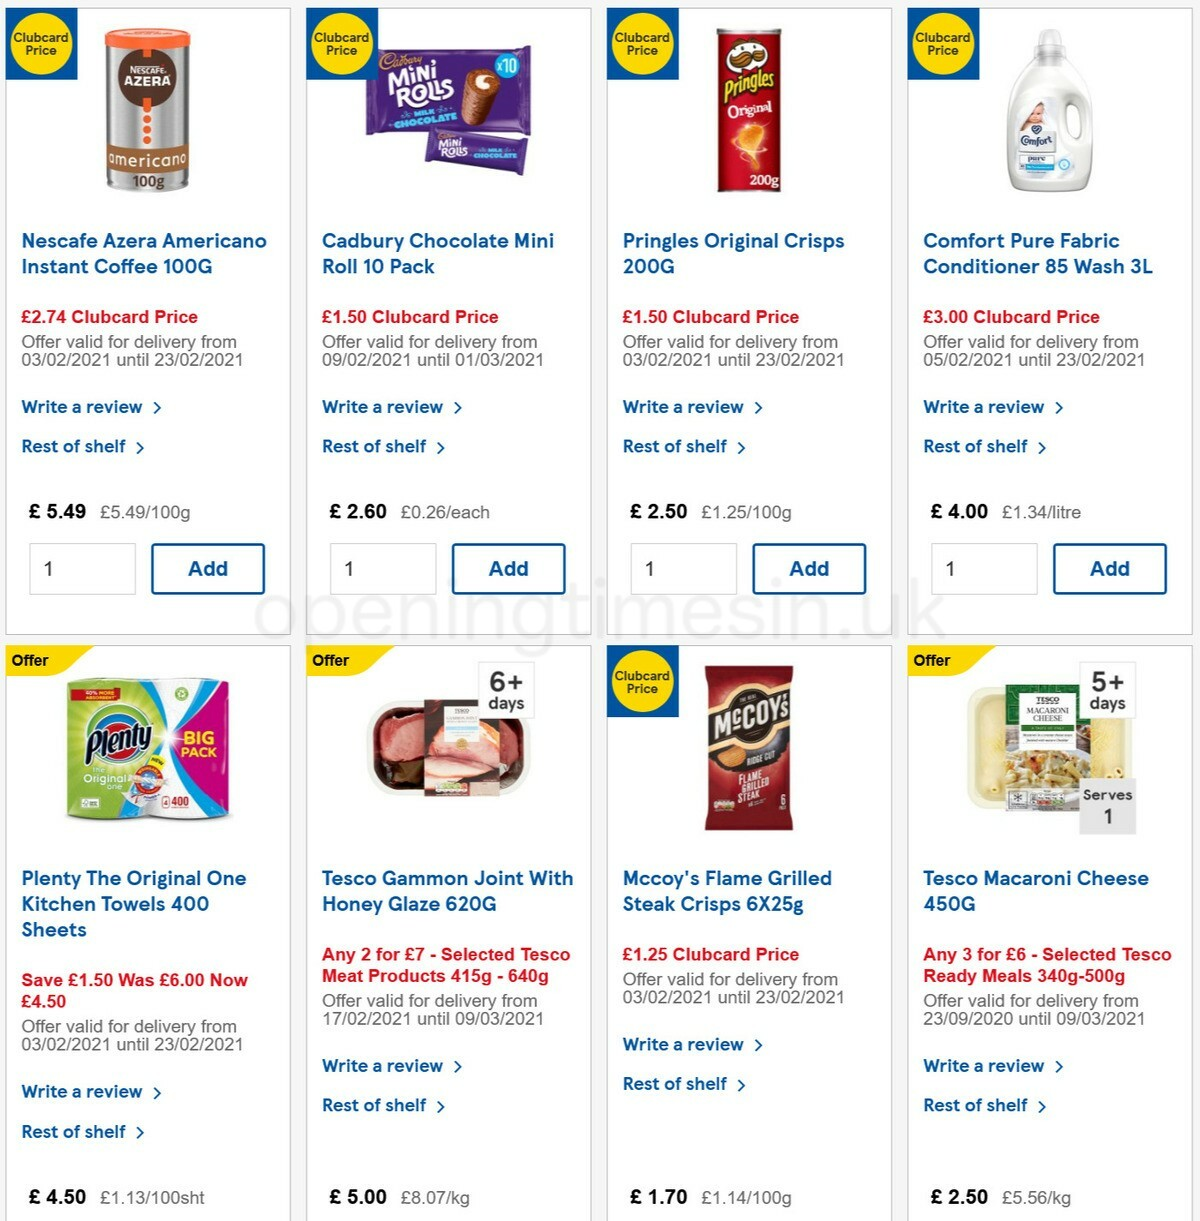 TESCO Offers from February 17